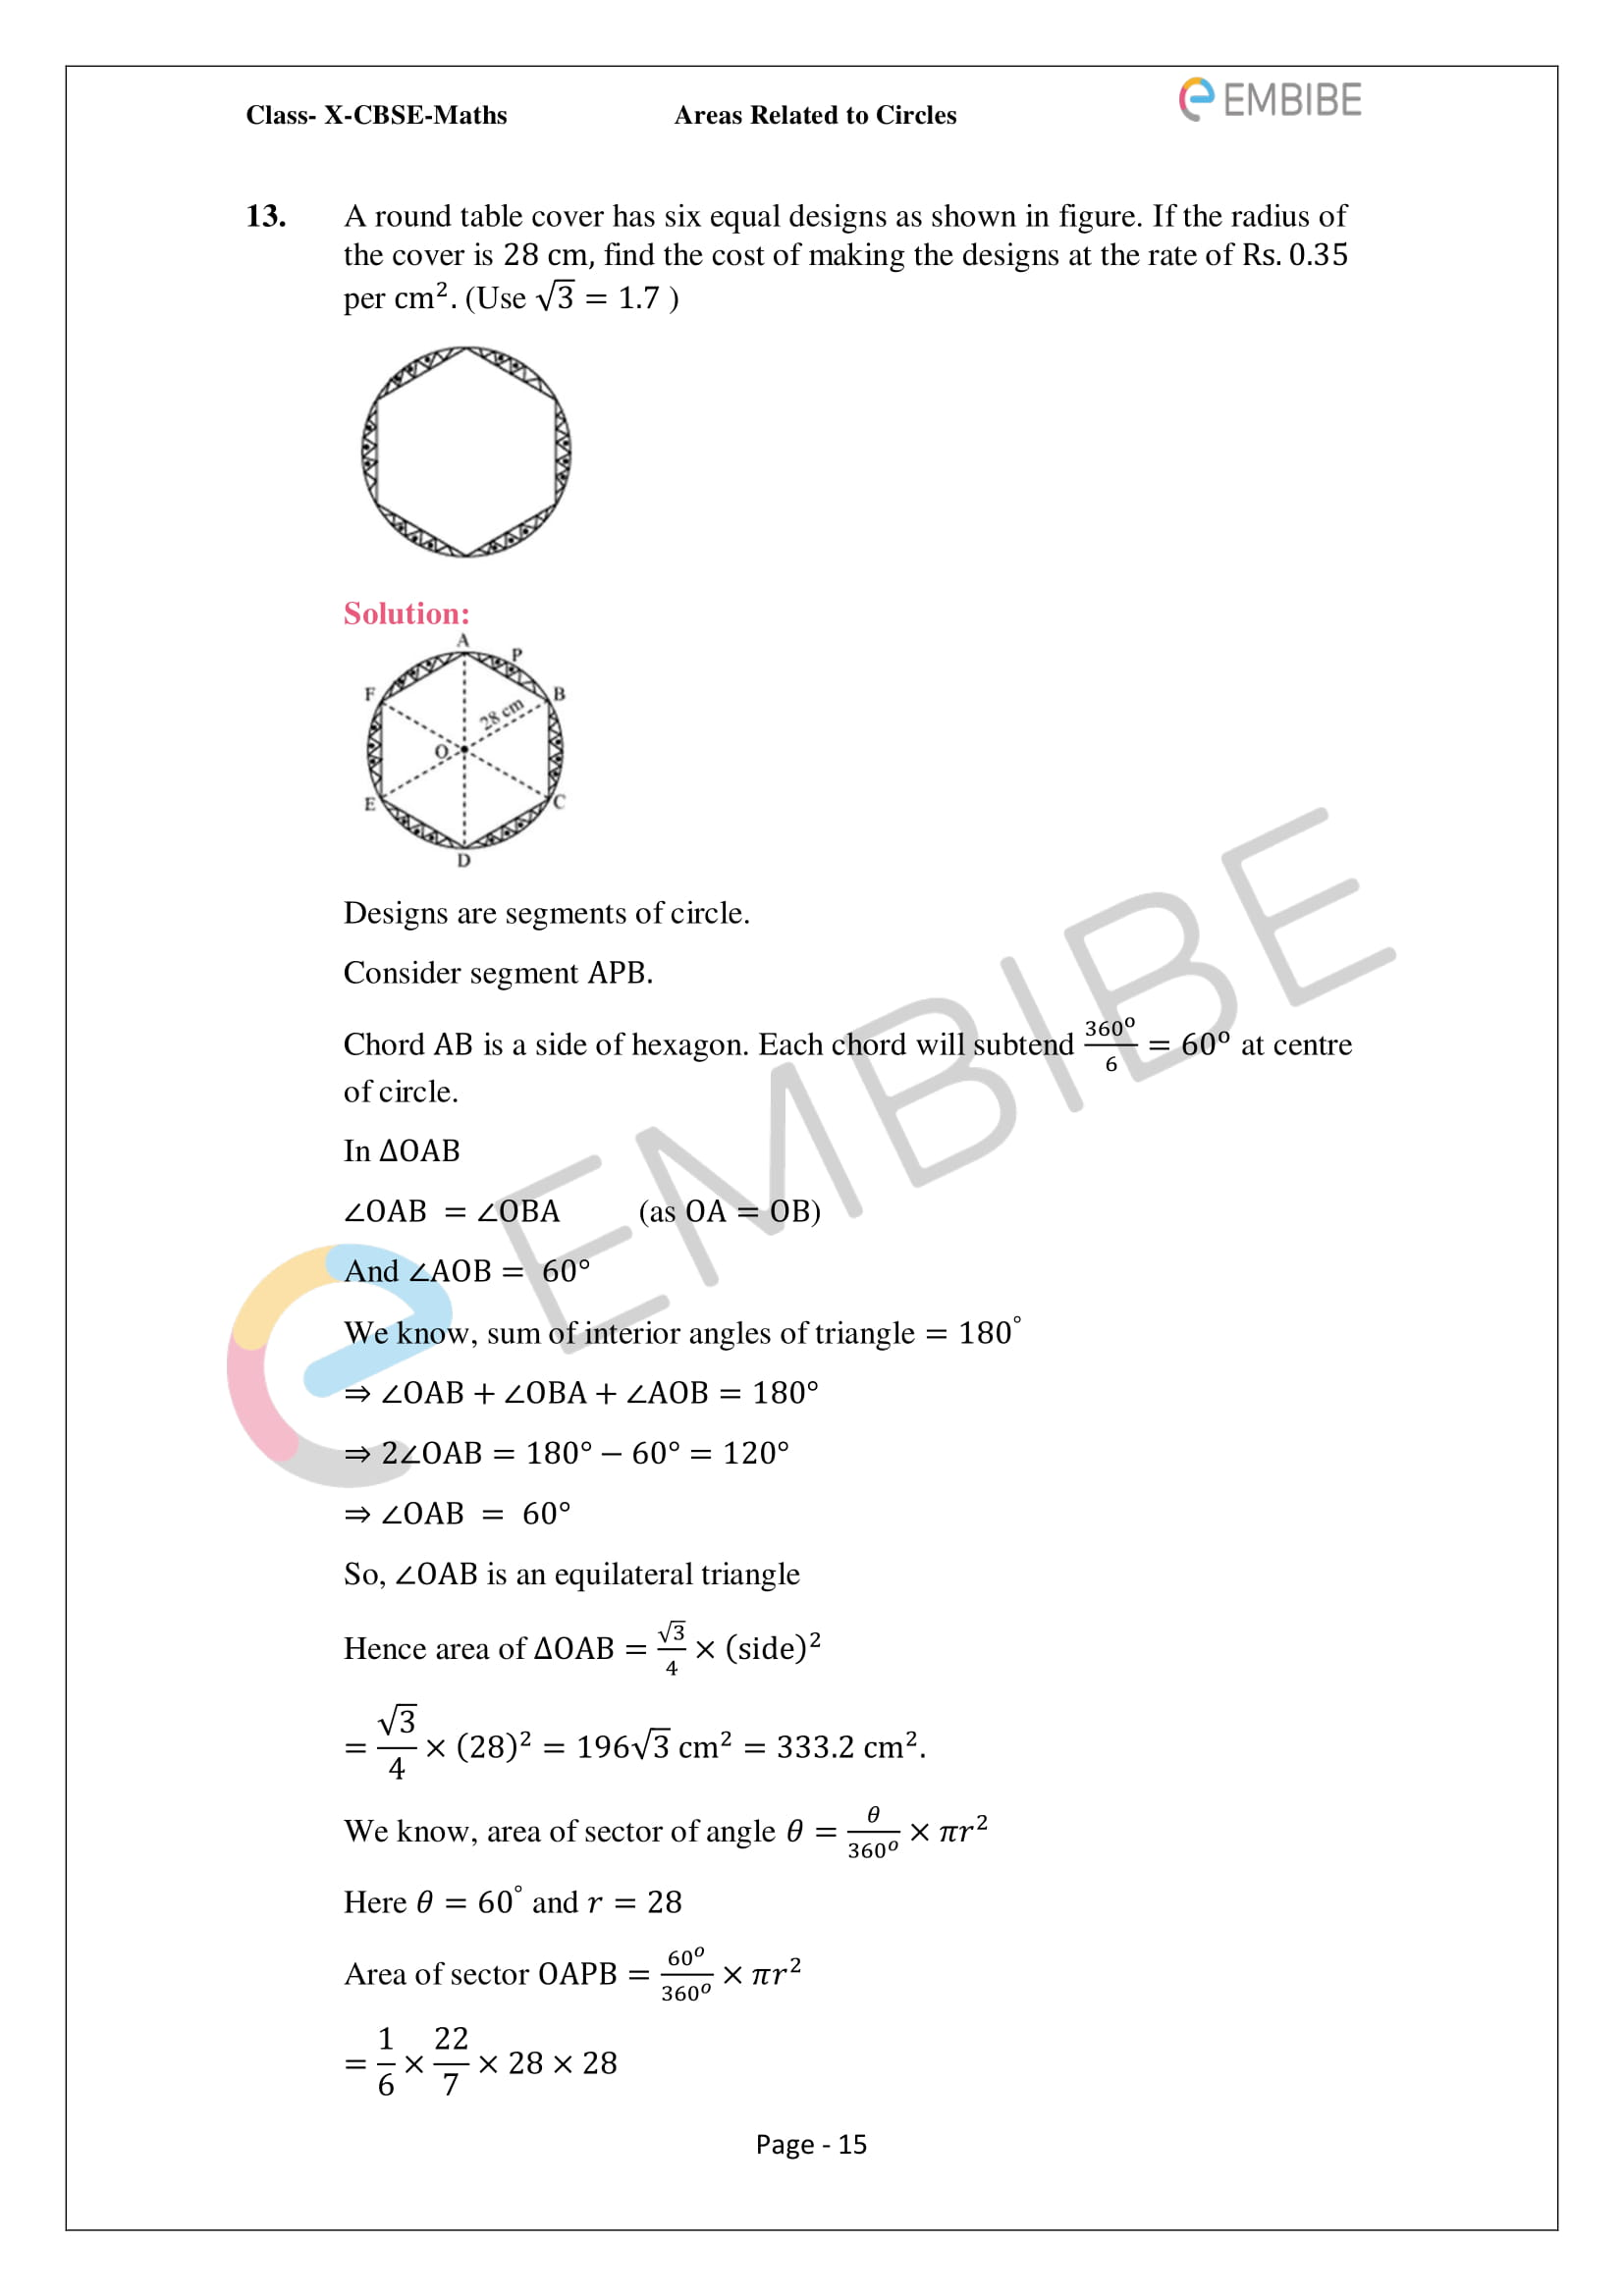 CBSE NCERT Solutions For Class 10 Maths Chapter 12 - Areas Related To Circle - 15